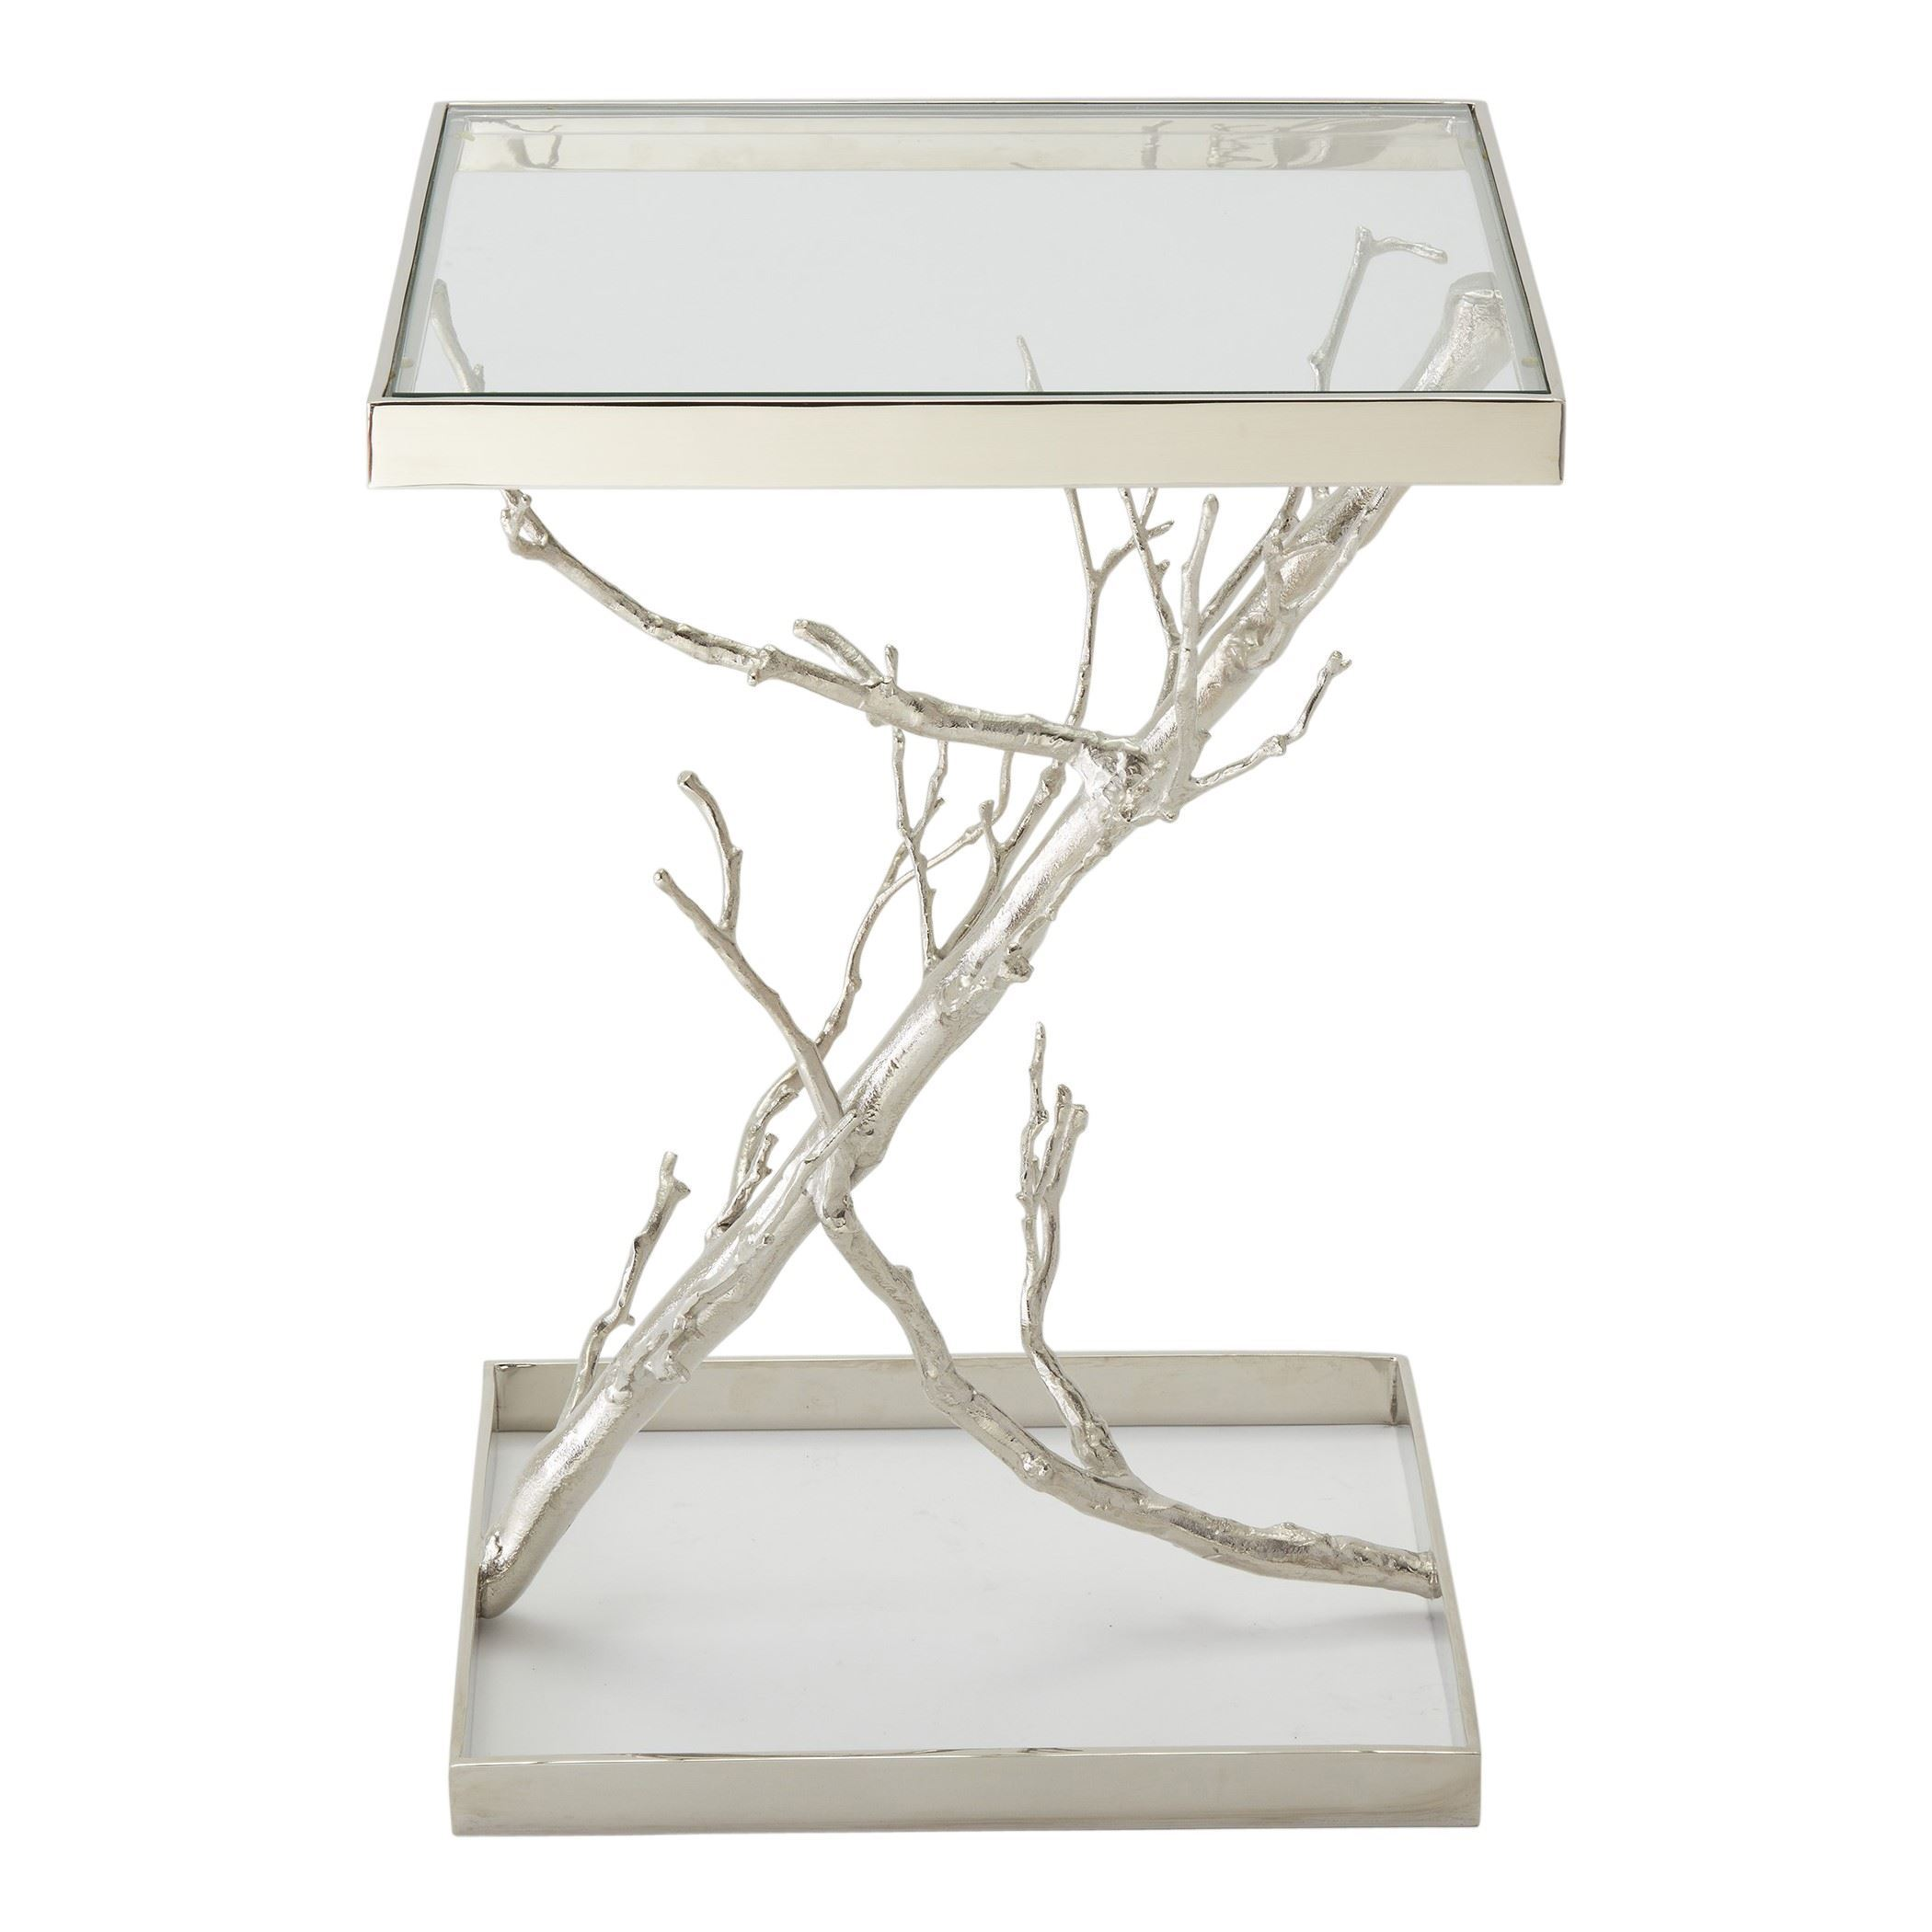 tree transitional nickel square accent table global views collapsible end mosaic garden pub height and chairs round with drawers gold marble pier one chair covers modern brass